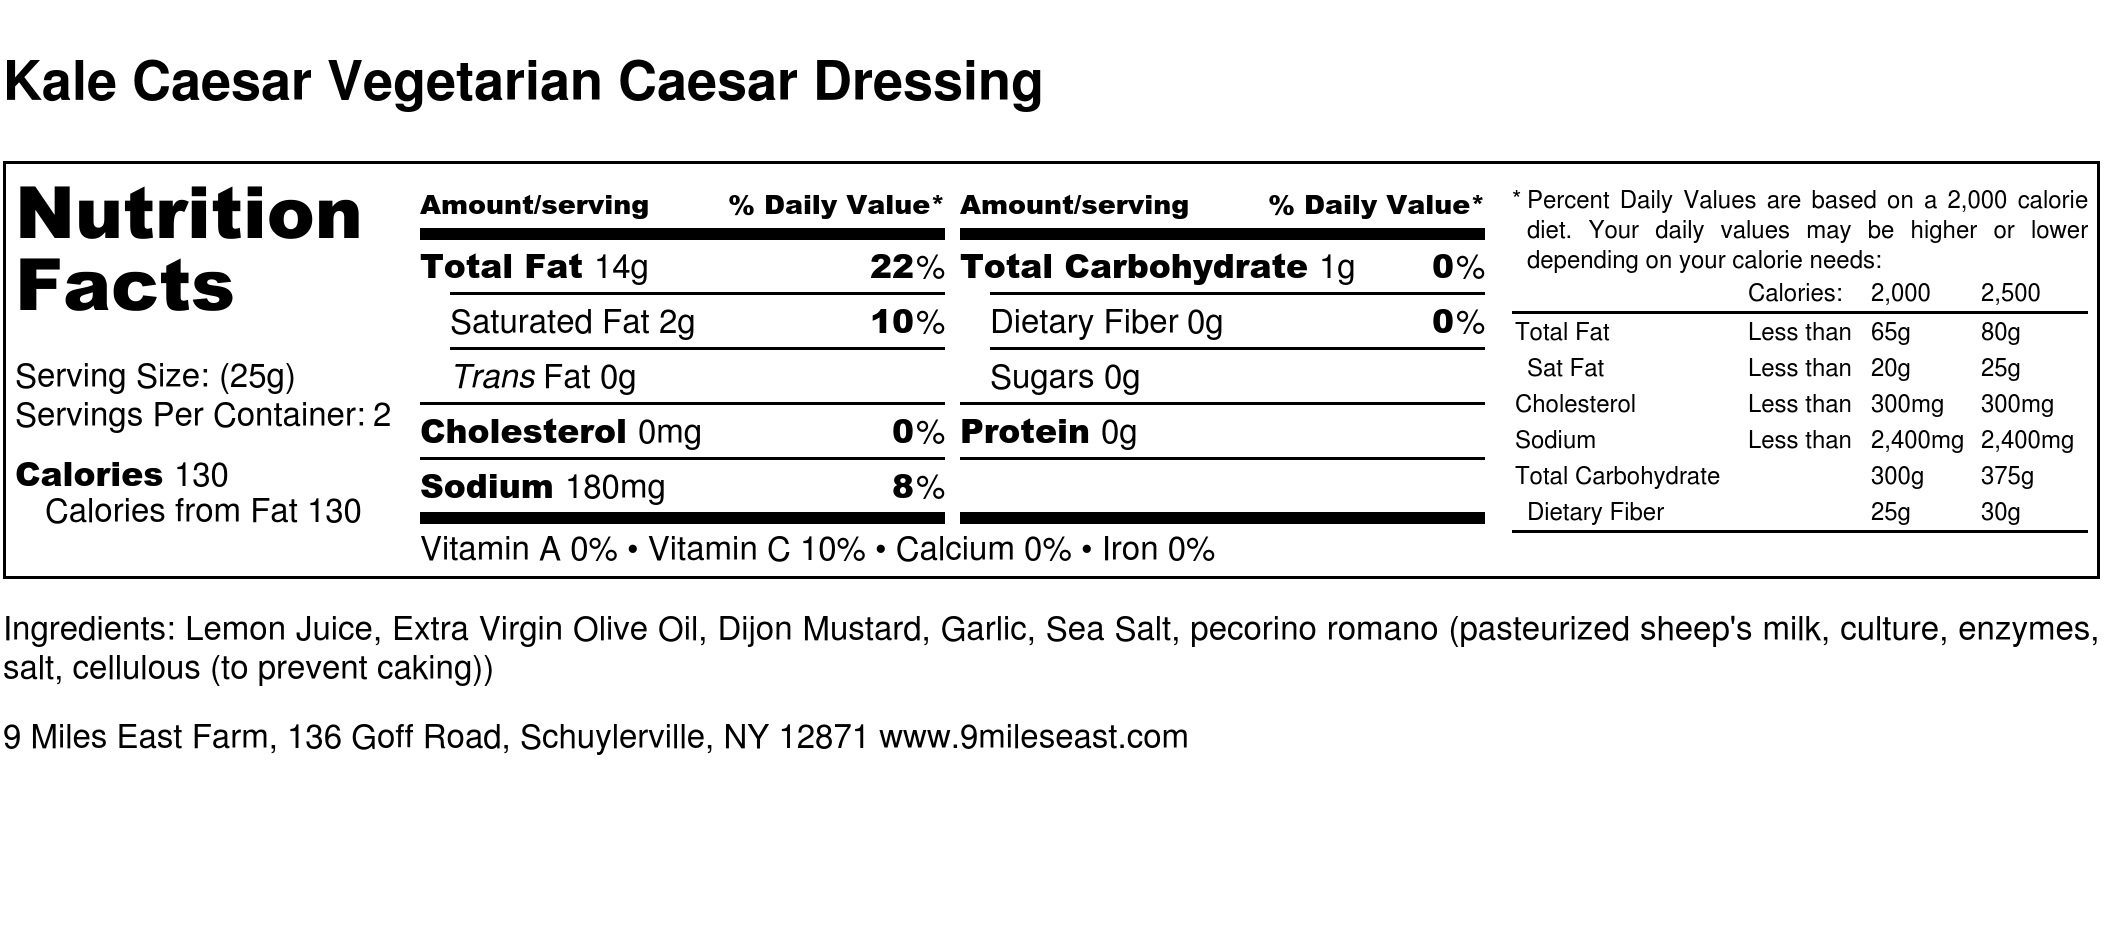 Kale Caesar Vegetarian Caesar Dressing - Nutrition Label.jpg